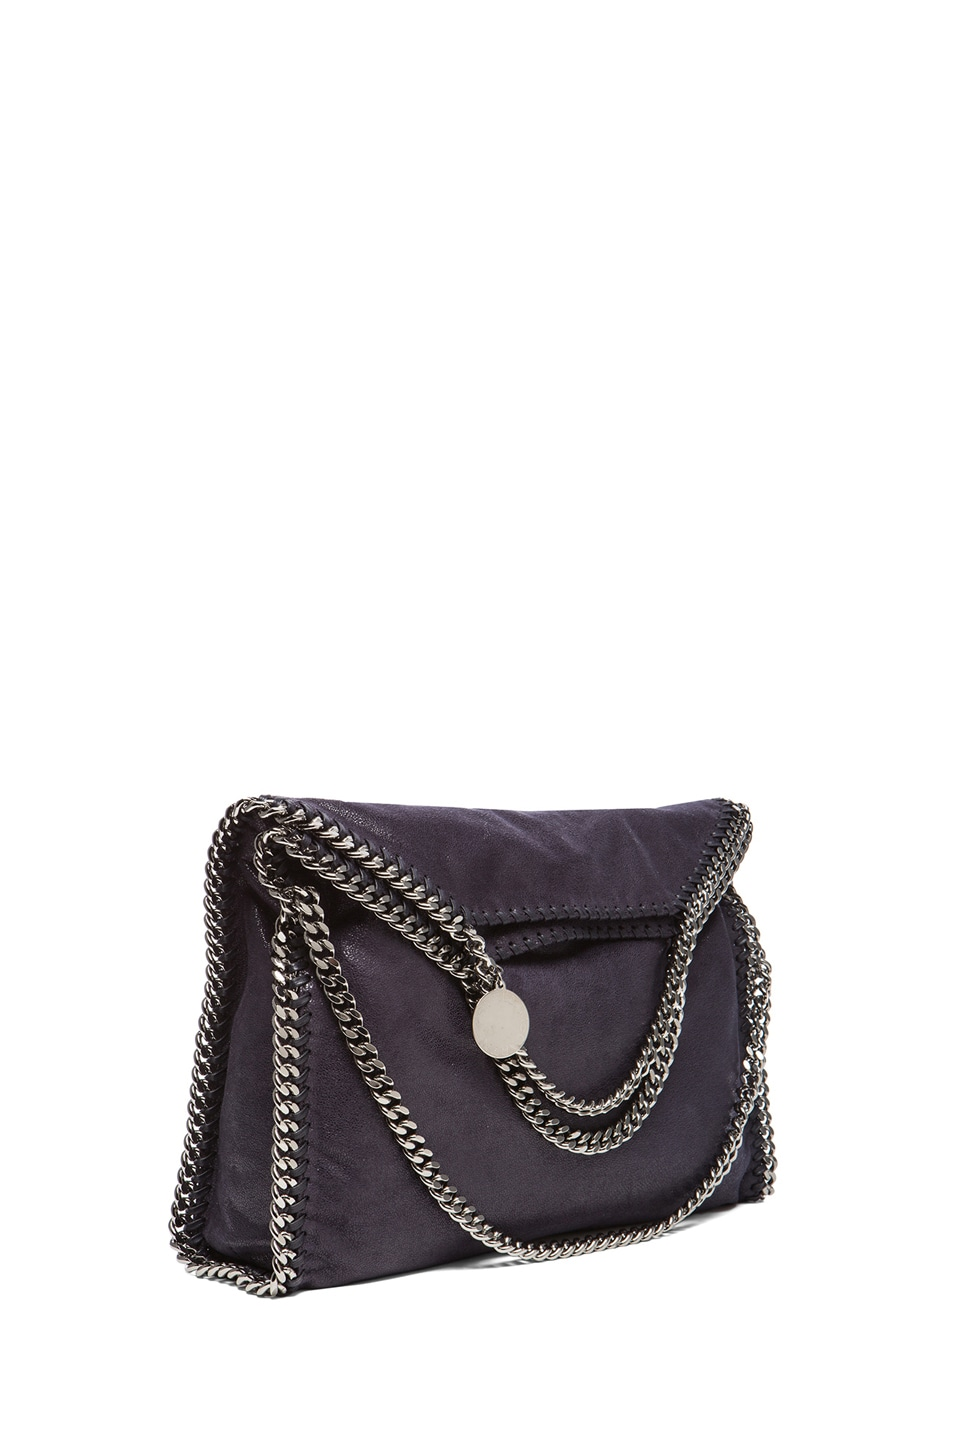 Image 1 of Stella McCartney Small Falabella Fold Over Tote in Navy Blue